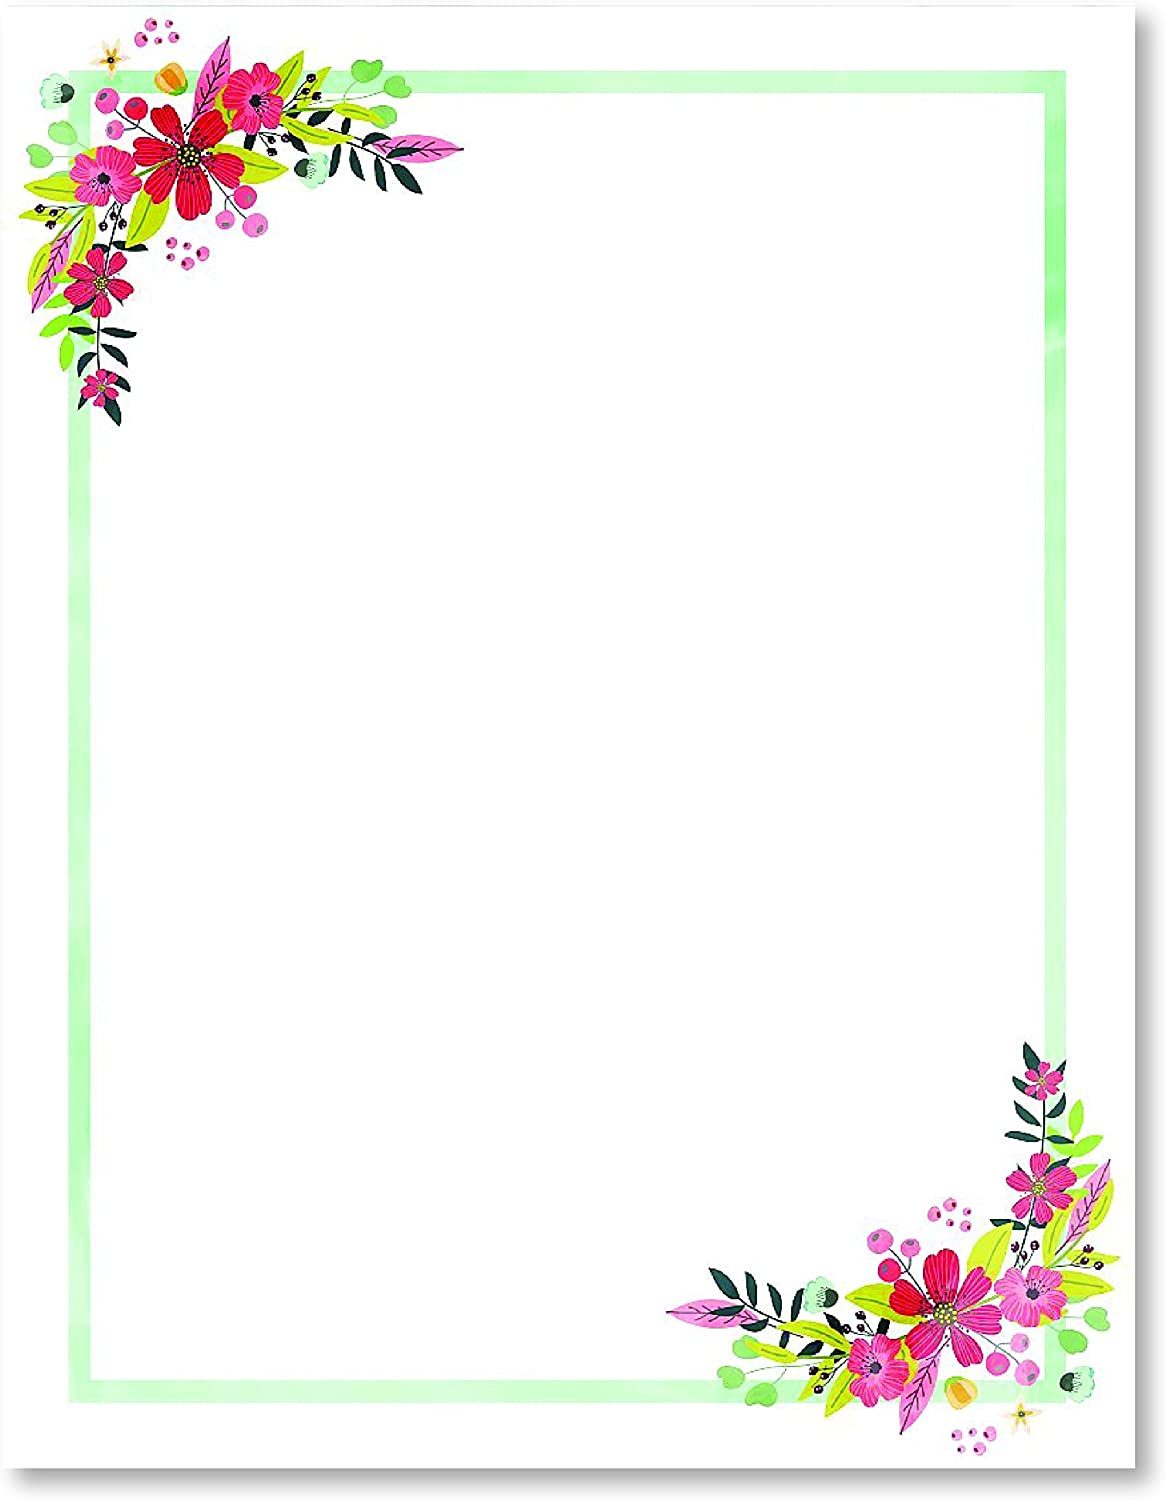 Stationery Paper Birthday Perfect for Notes Engagement Party Wedding Letter Writing and Invitations for Bridal Shower Red Hibiscus 100 Set of Floral DIY Invitation Kit VIP and All Occasions